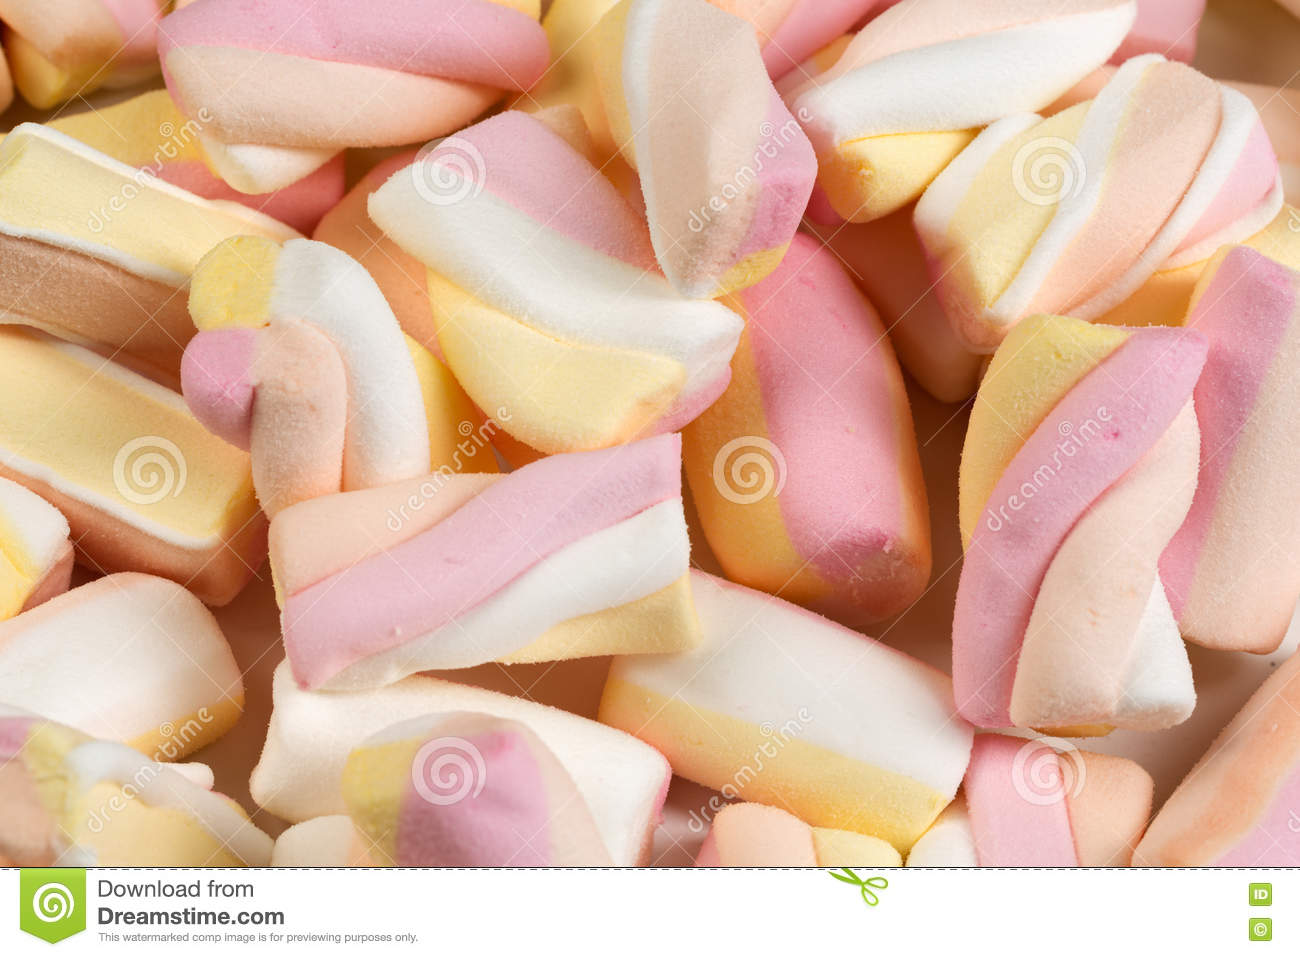 Background of the chewy sweets.